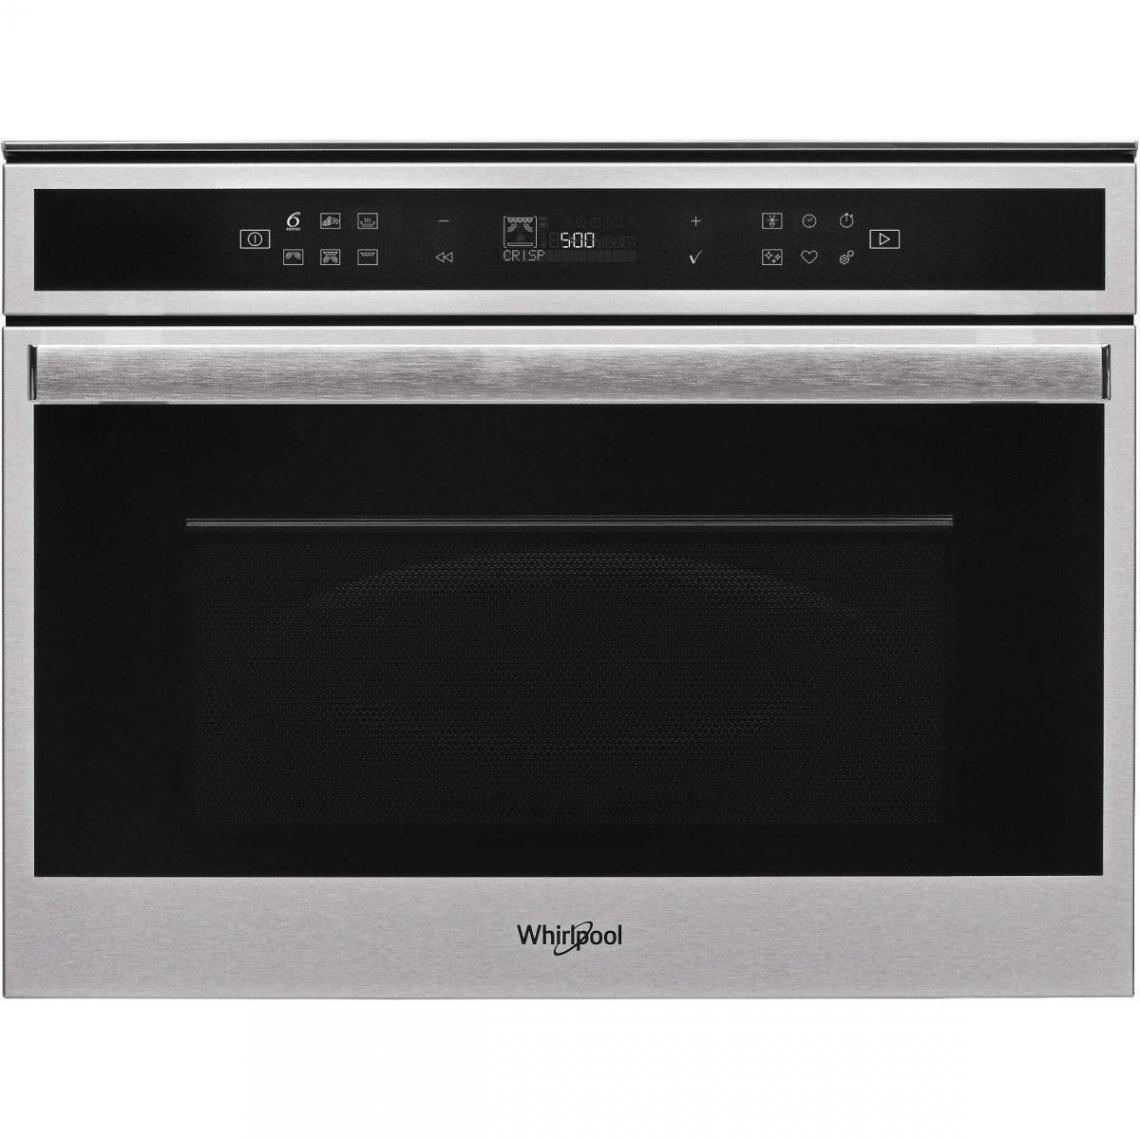 whirlpool Micro-ondes Encastrable 40l Whirlpool 900w 59.5cm C, W 6 Mw 461